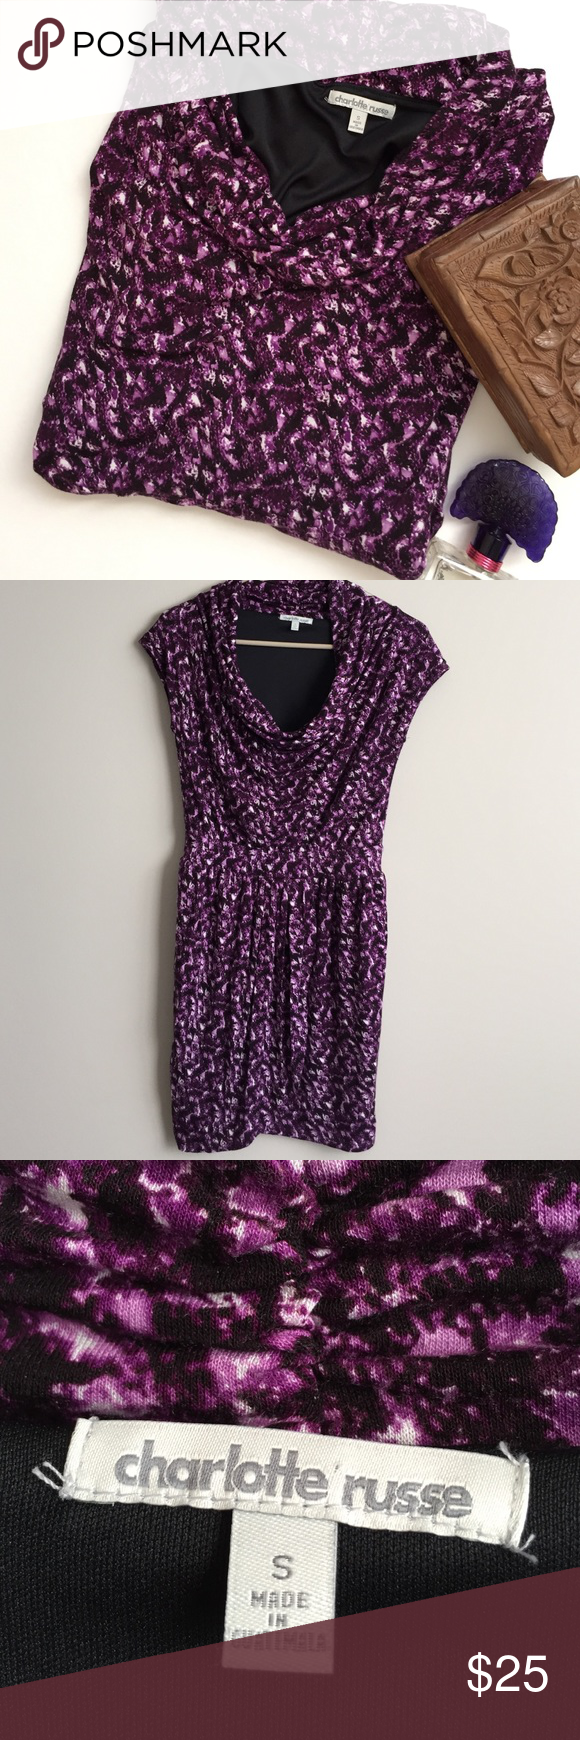 Charlotte Russe body con dress Beautiful mini dress. Tulip overlap. Body con. Cowl neck. Perfect to wear with tights for fall. Used once. Excellent condition. Bundle and save more. Charlotte Russe Dresses Mini